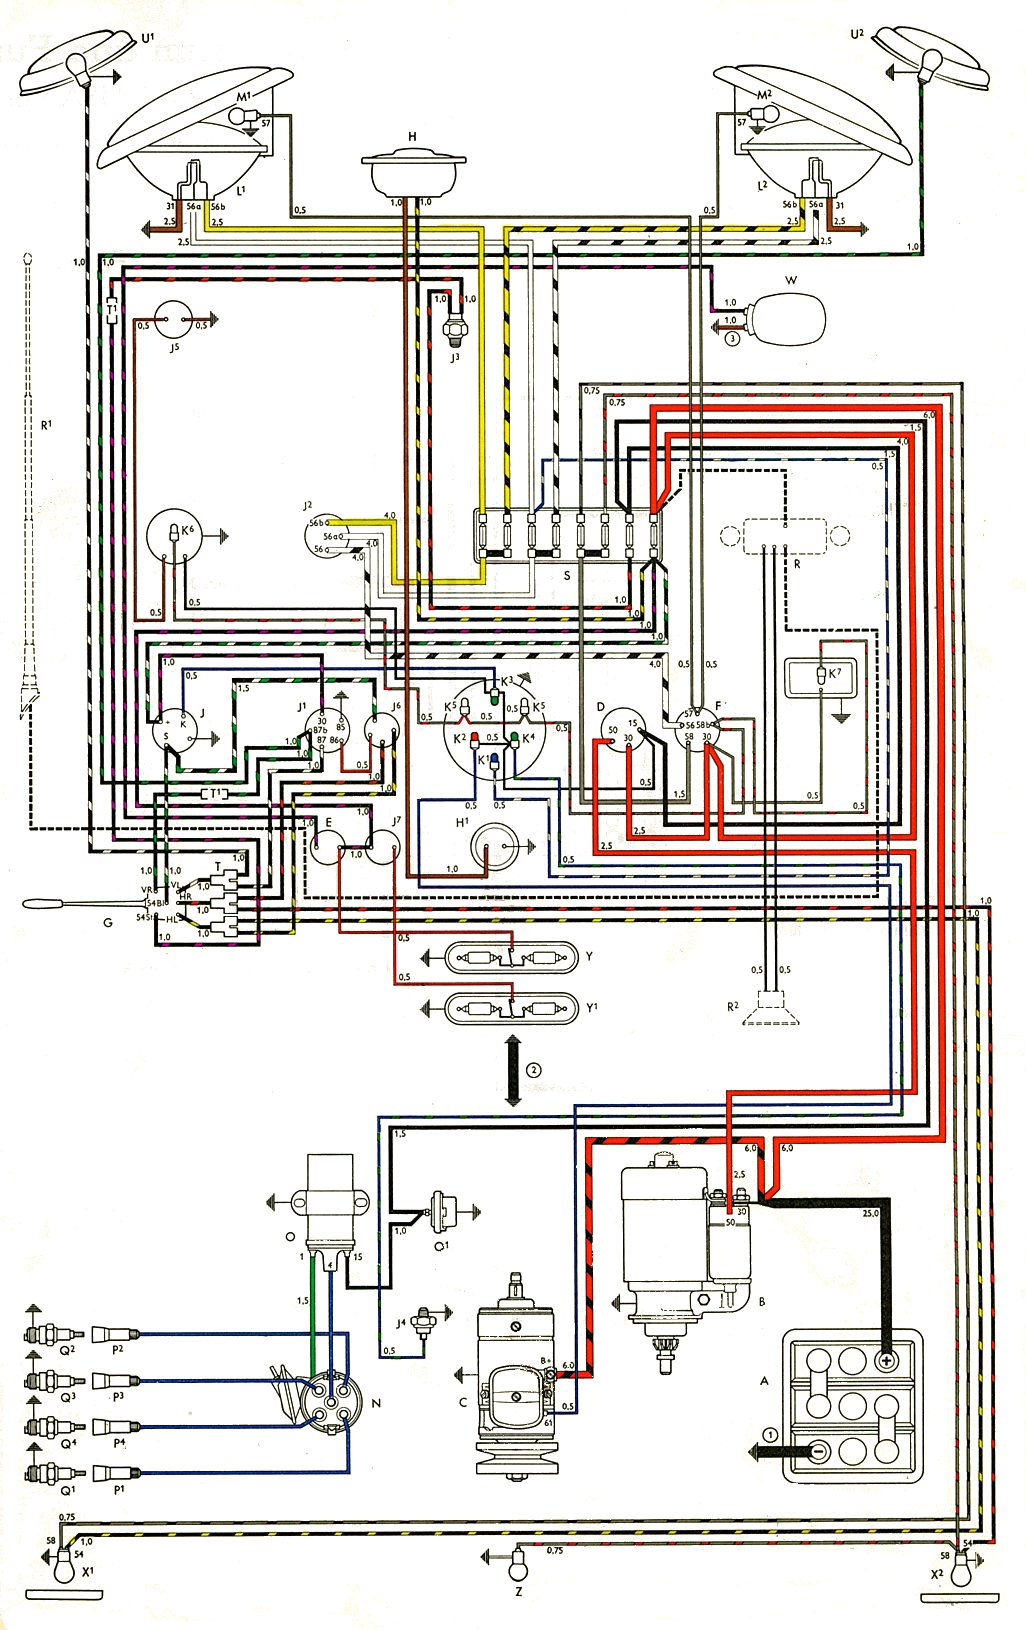 hight resolution of 58 vw bus wiring harness wiring diagram 58 vw bus wiring harness